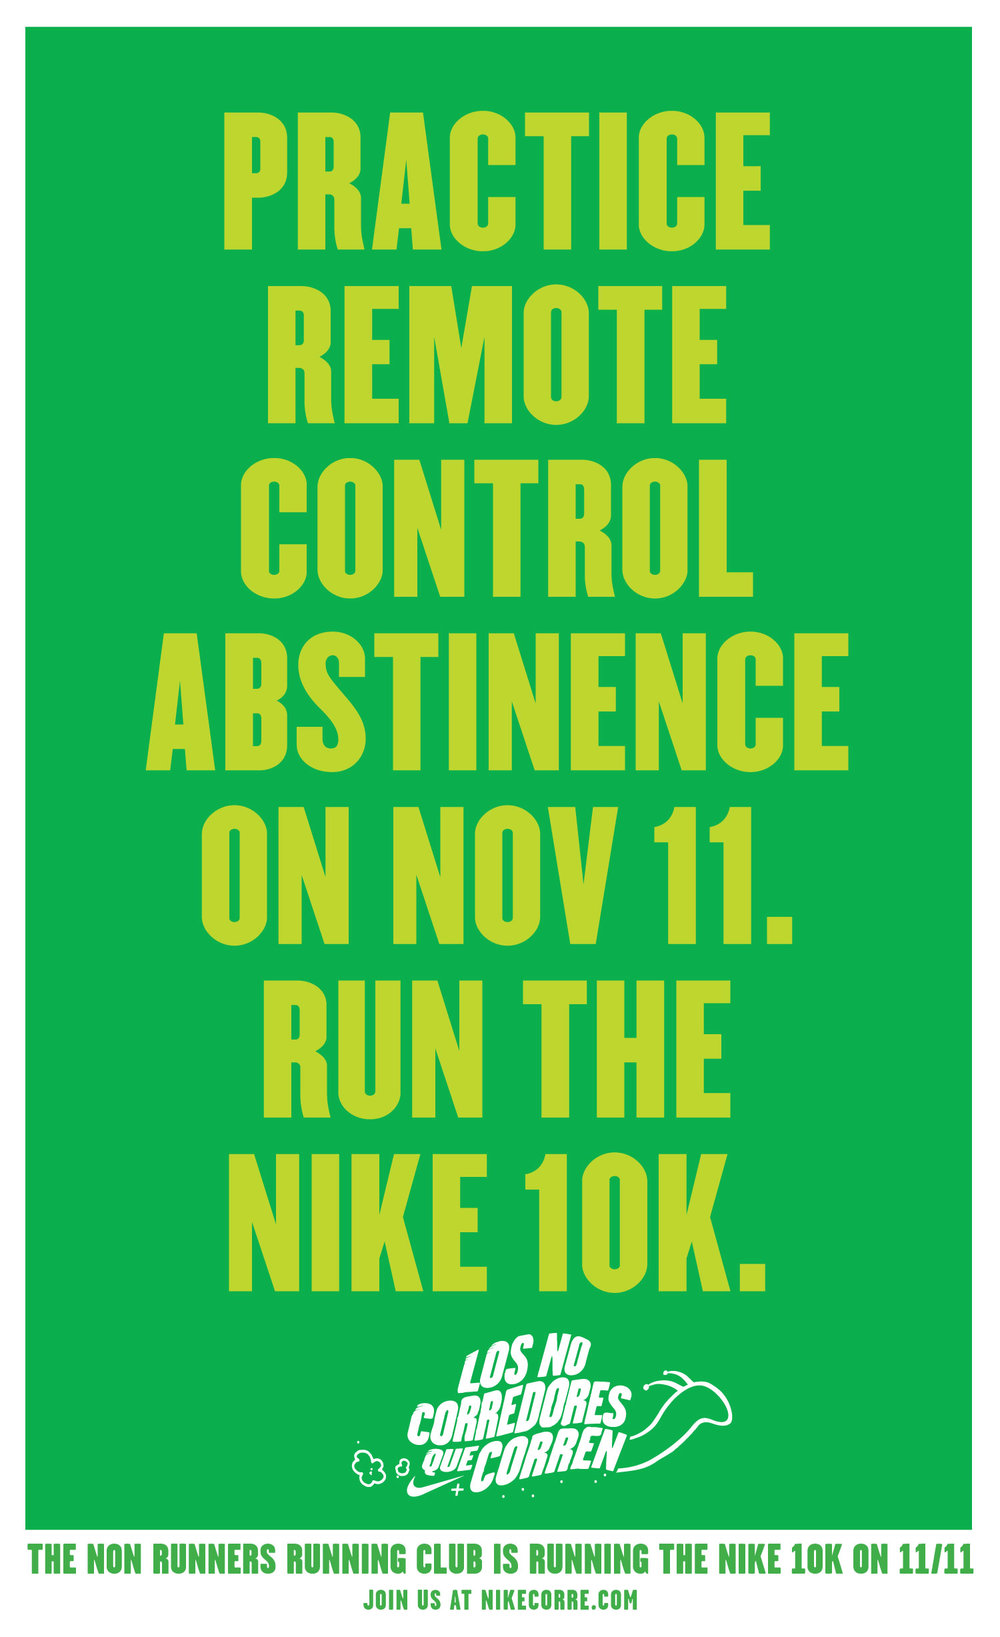 nikeCorre_poster1.jpg